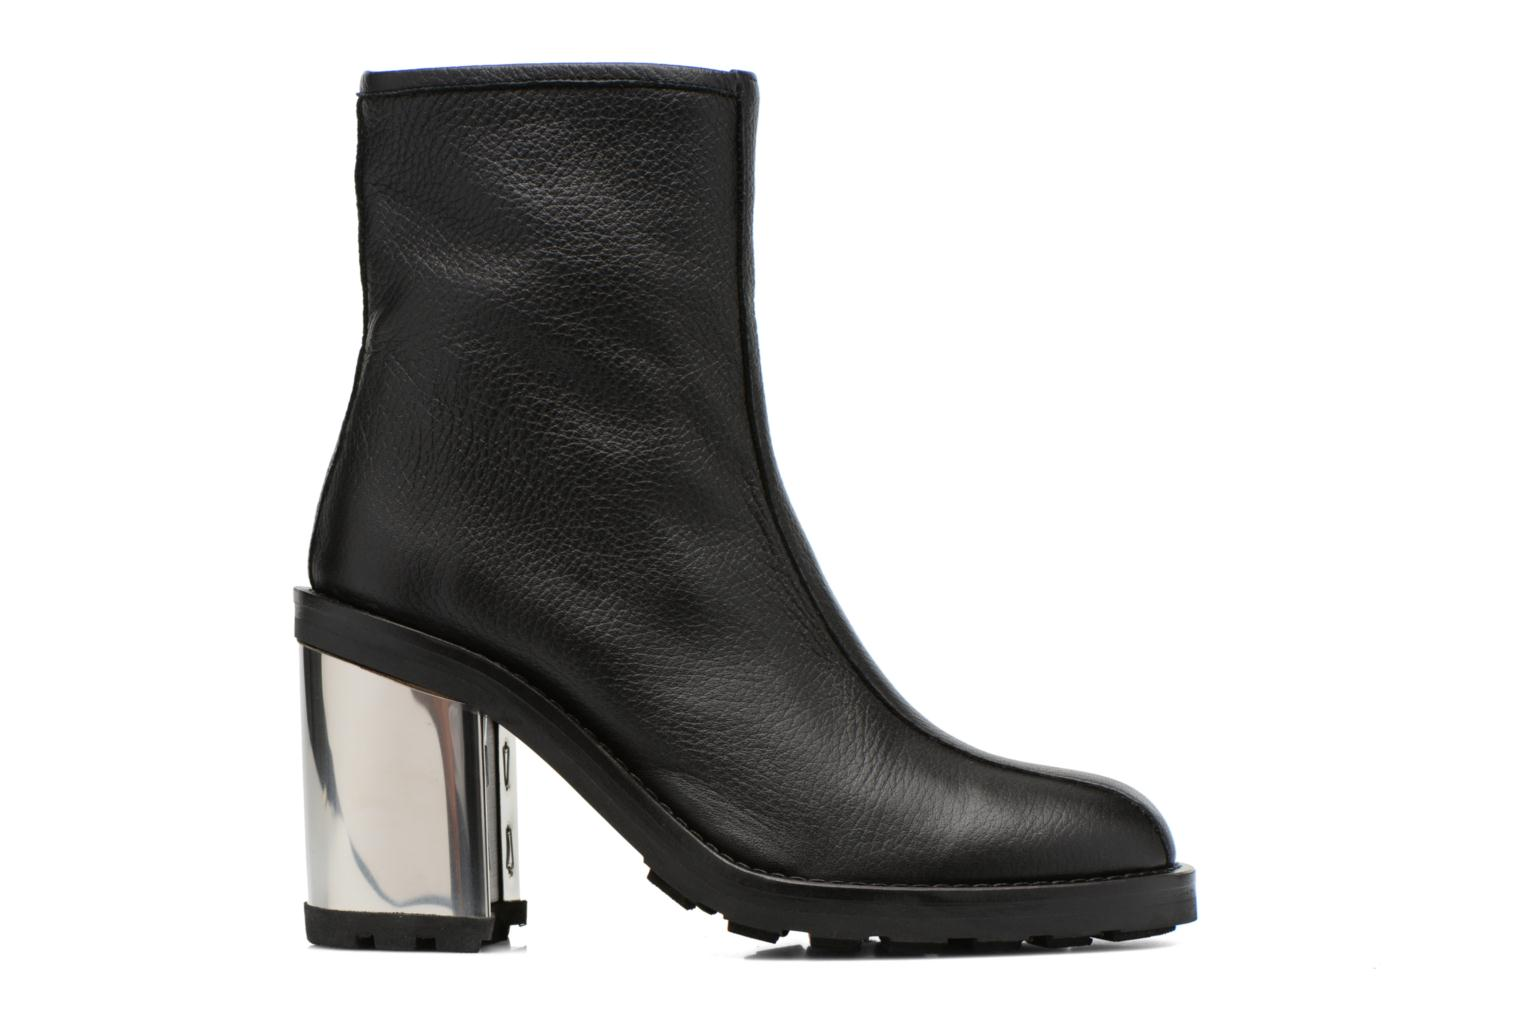 METALLIC Opening HEEL Ceremony BOOT ISA Black qHHEU0R